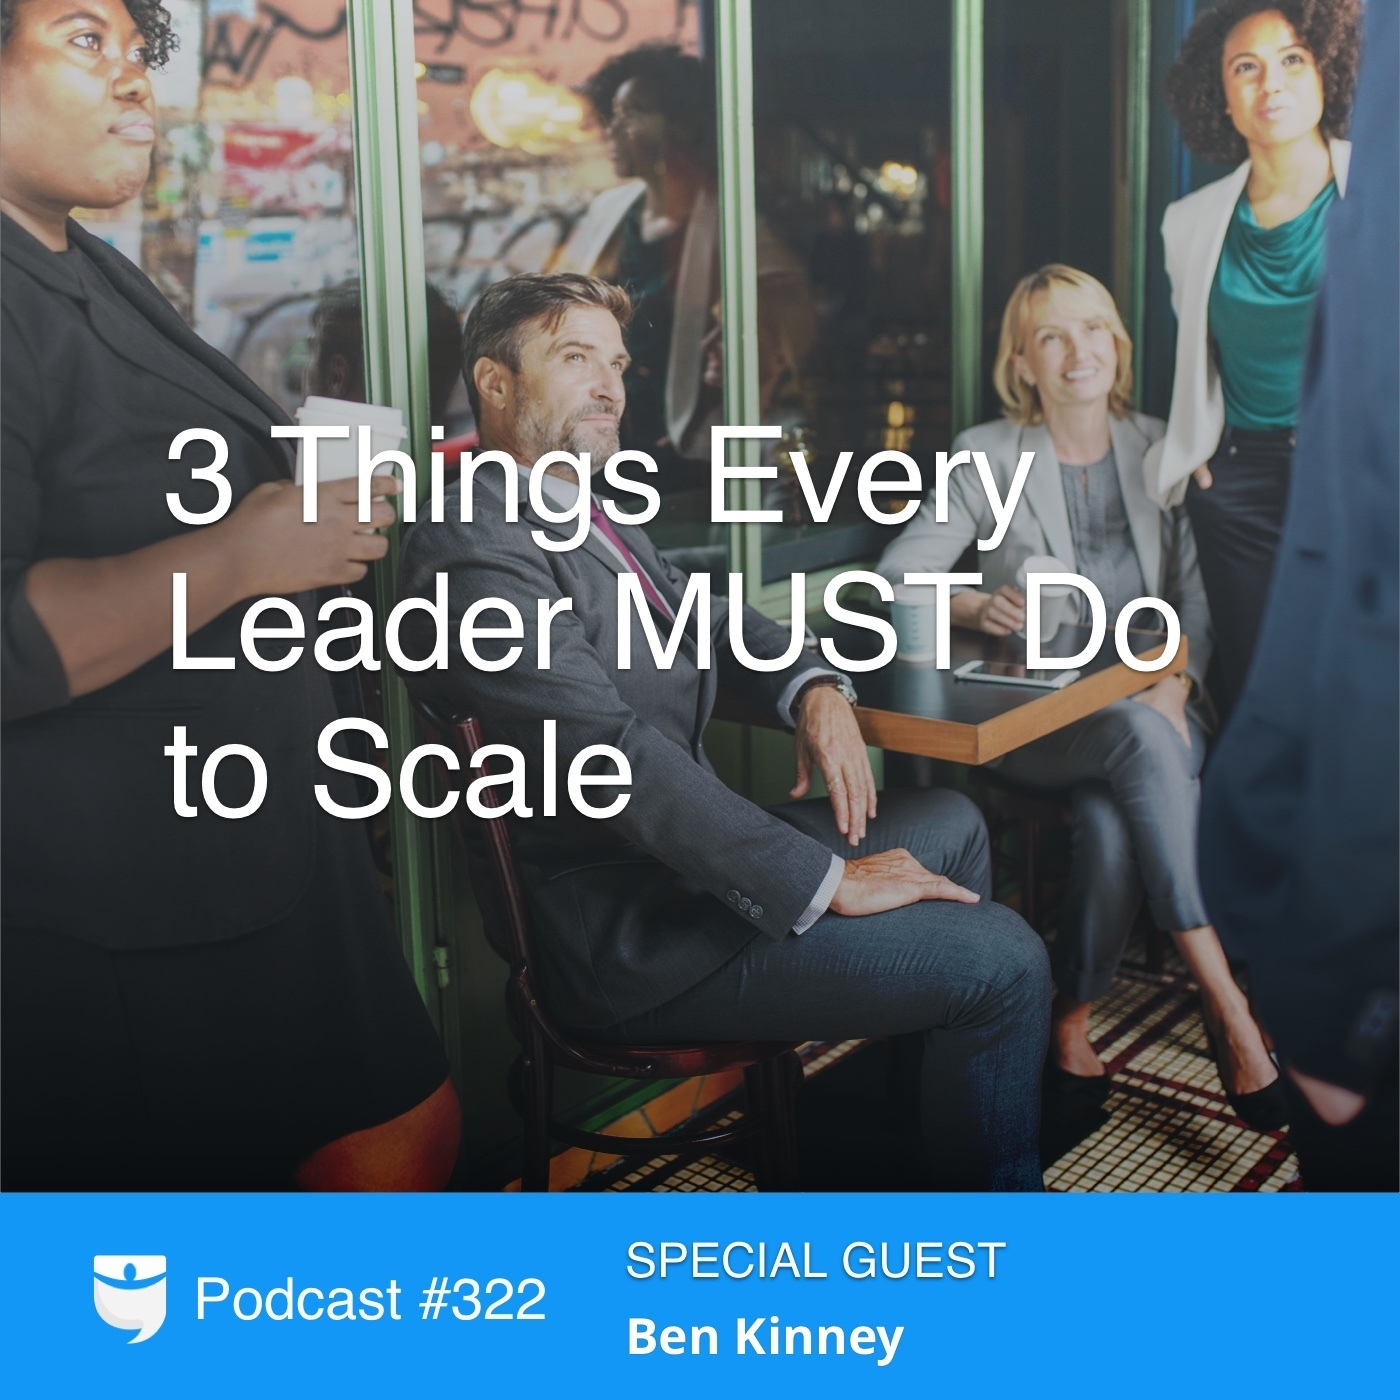 #322: 3 Things Every Leader MUST Do to Scale with Ben Kinney